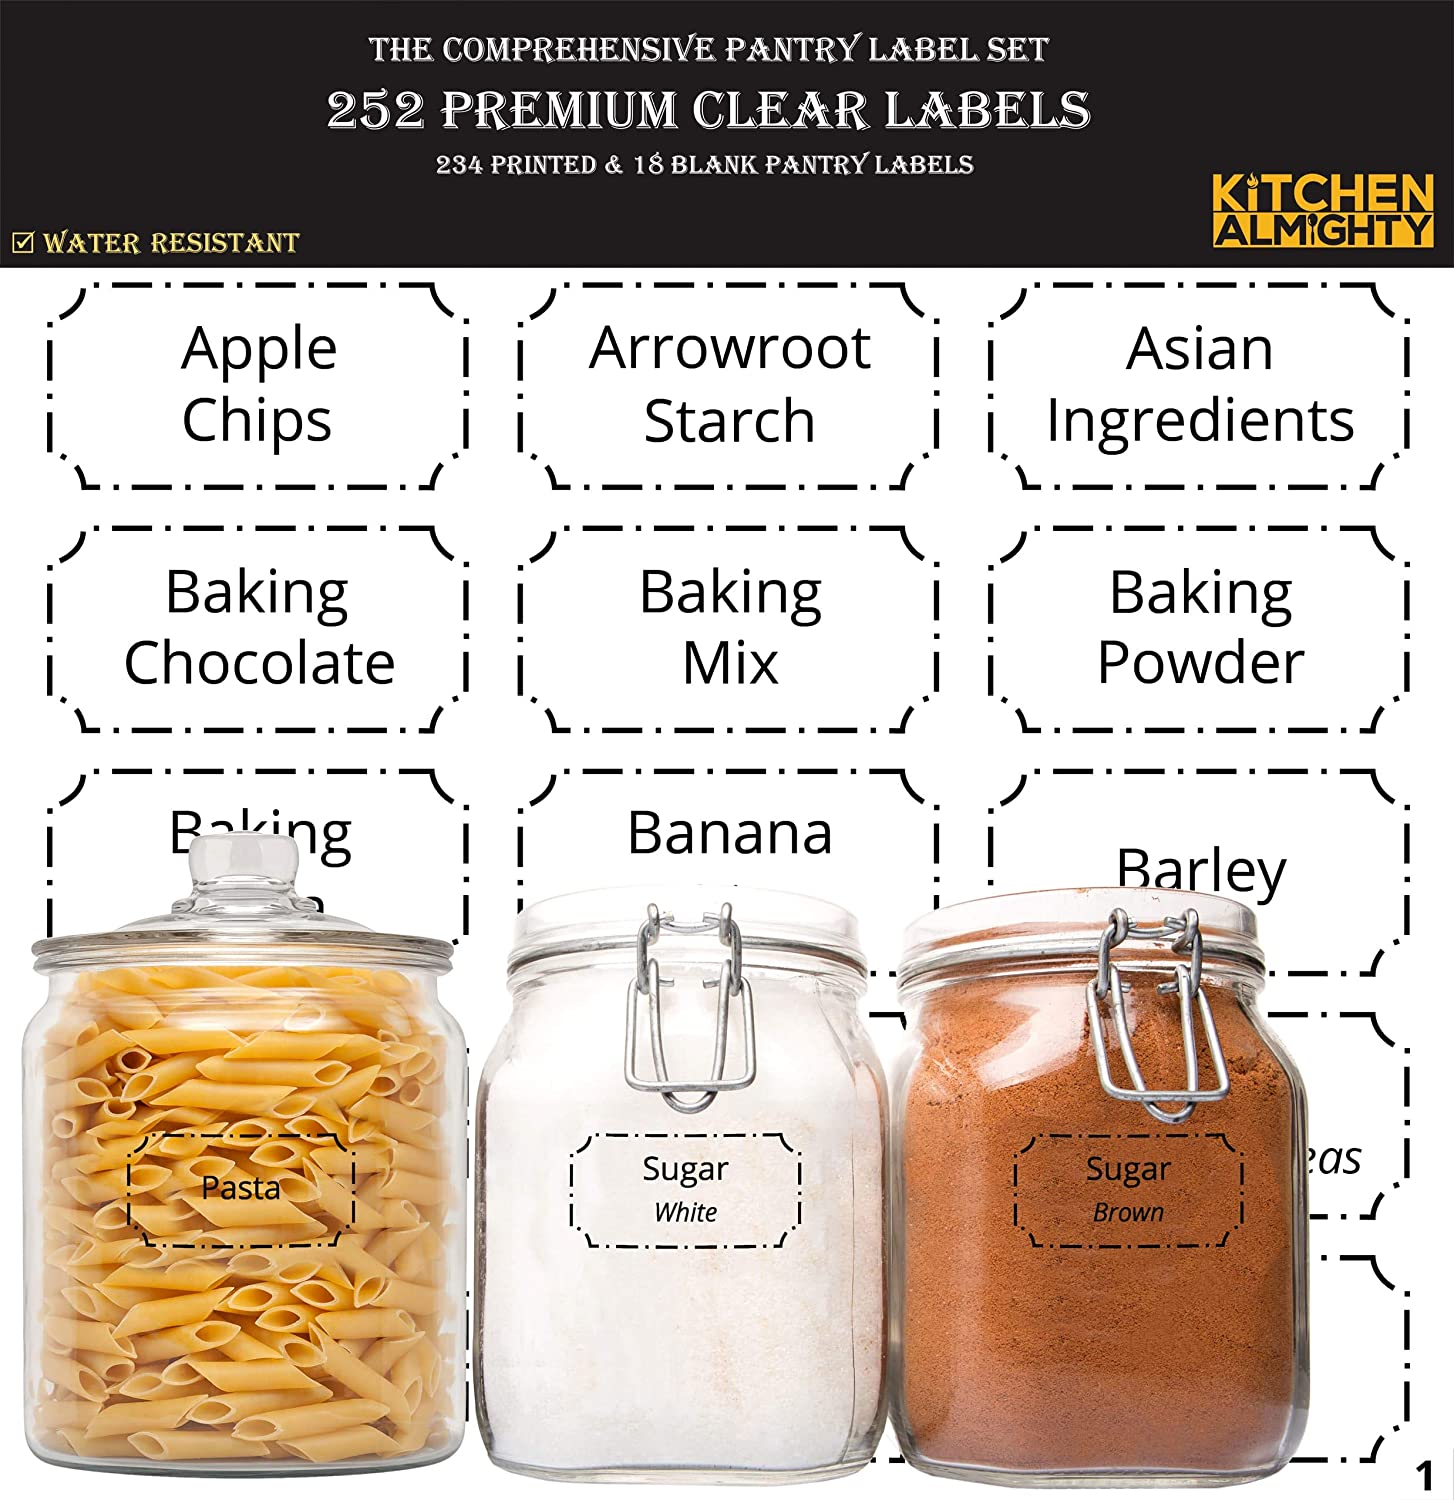 252 preprinted 3 x 1 5 clear pantry labels set w extra write on stickers for jars bottles containers canisters include an exclusive numbered